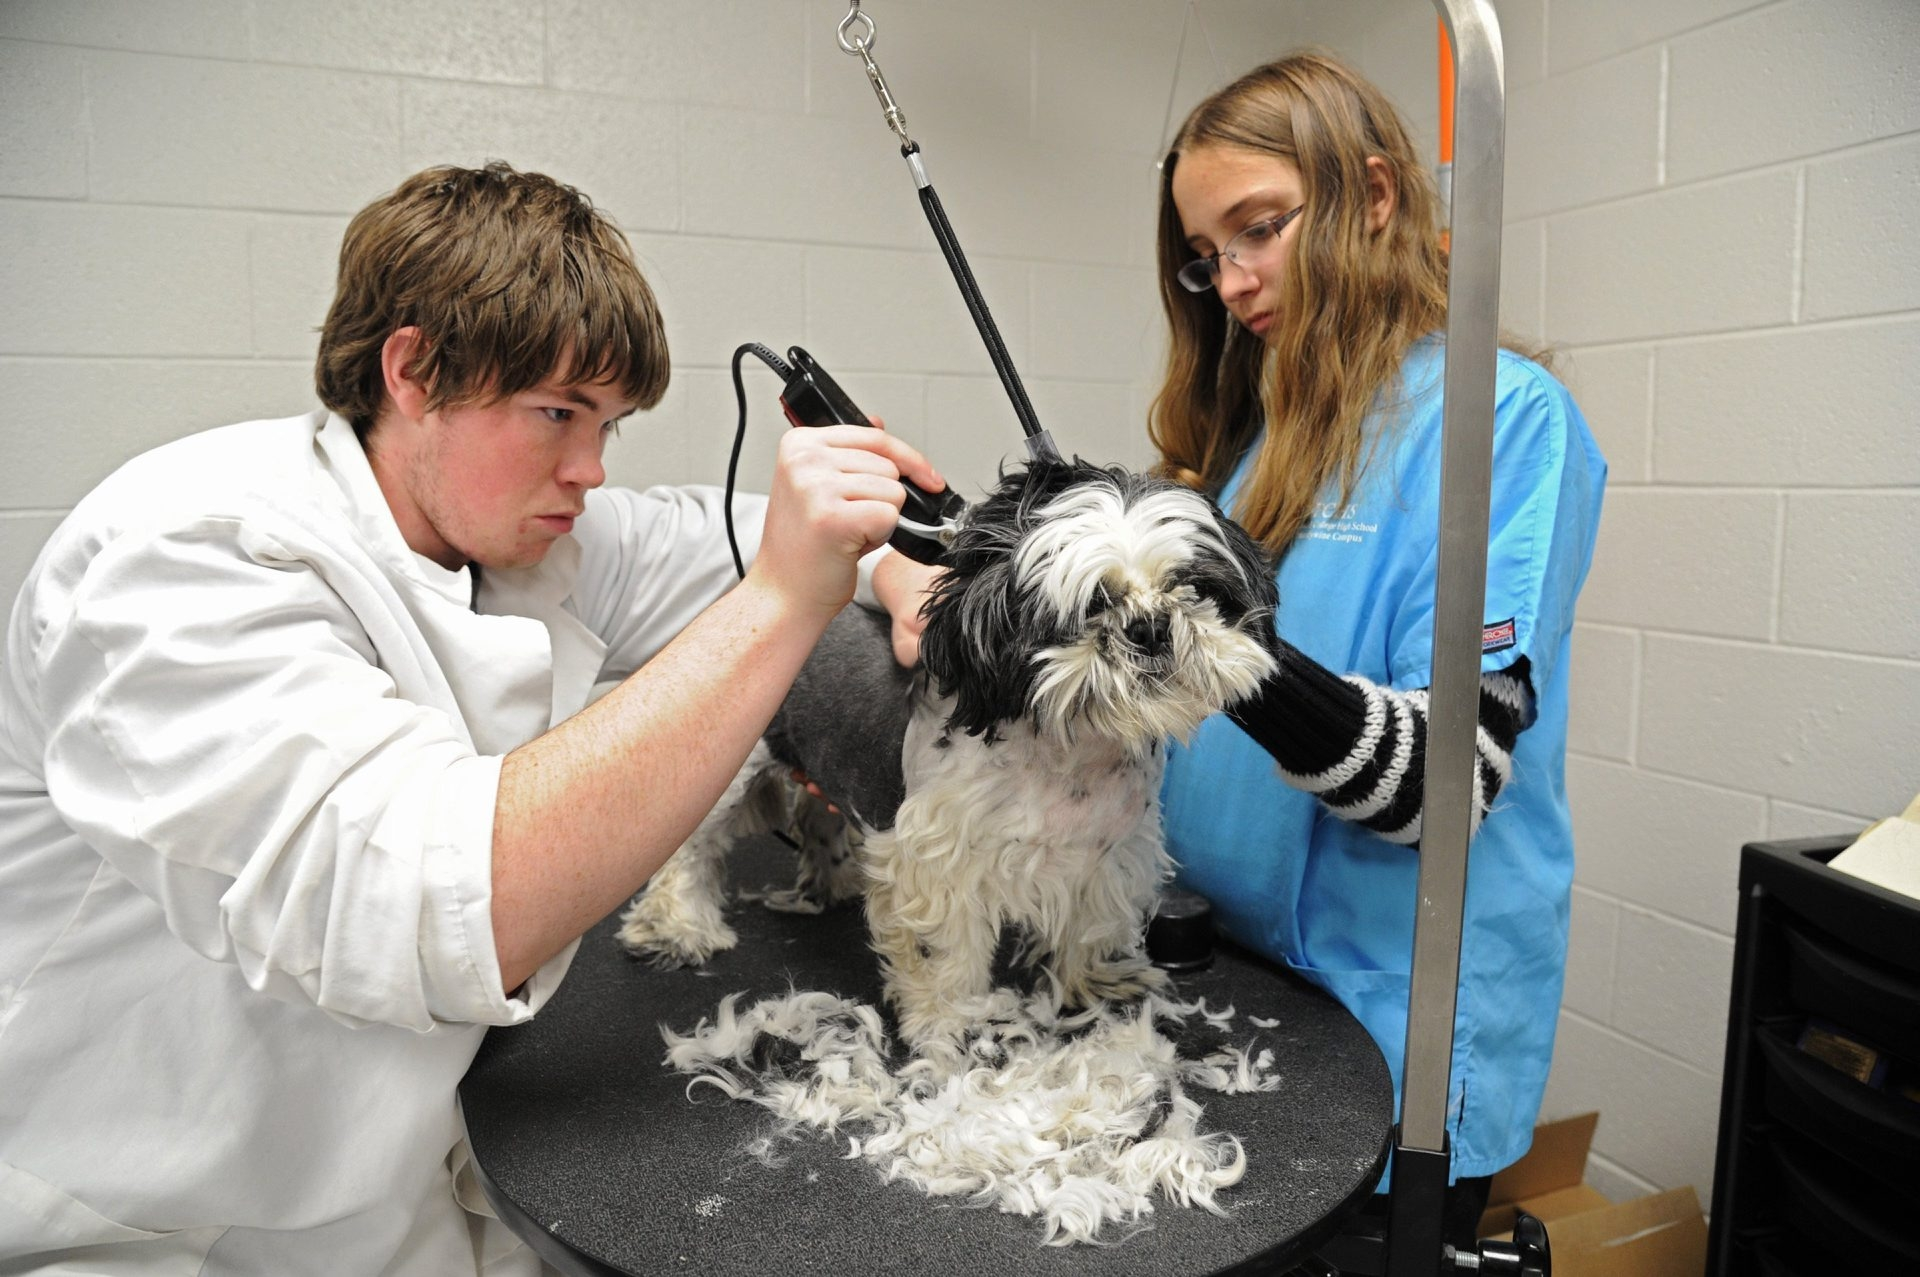 Students Scott Persing, 18, and Courtney Draper, 17, take a step toward a veterinary career as they practice their skills on Dwight the shih-tzu at Technical College High.